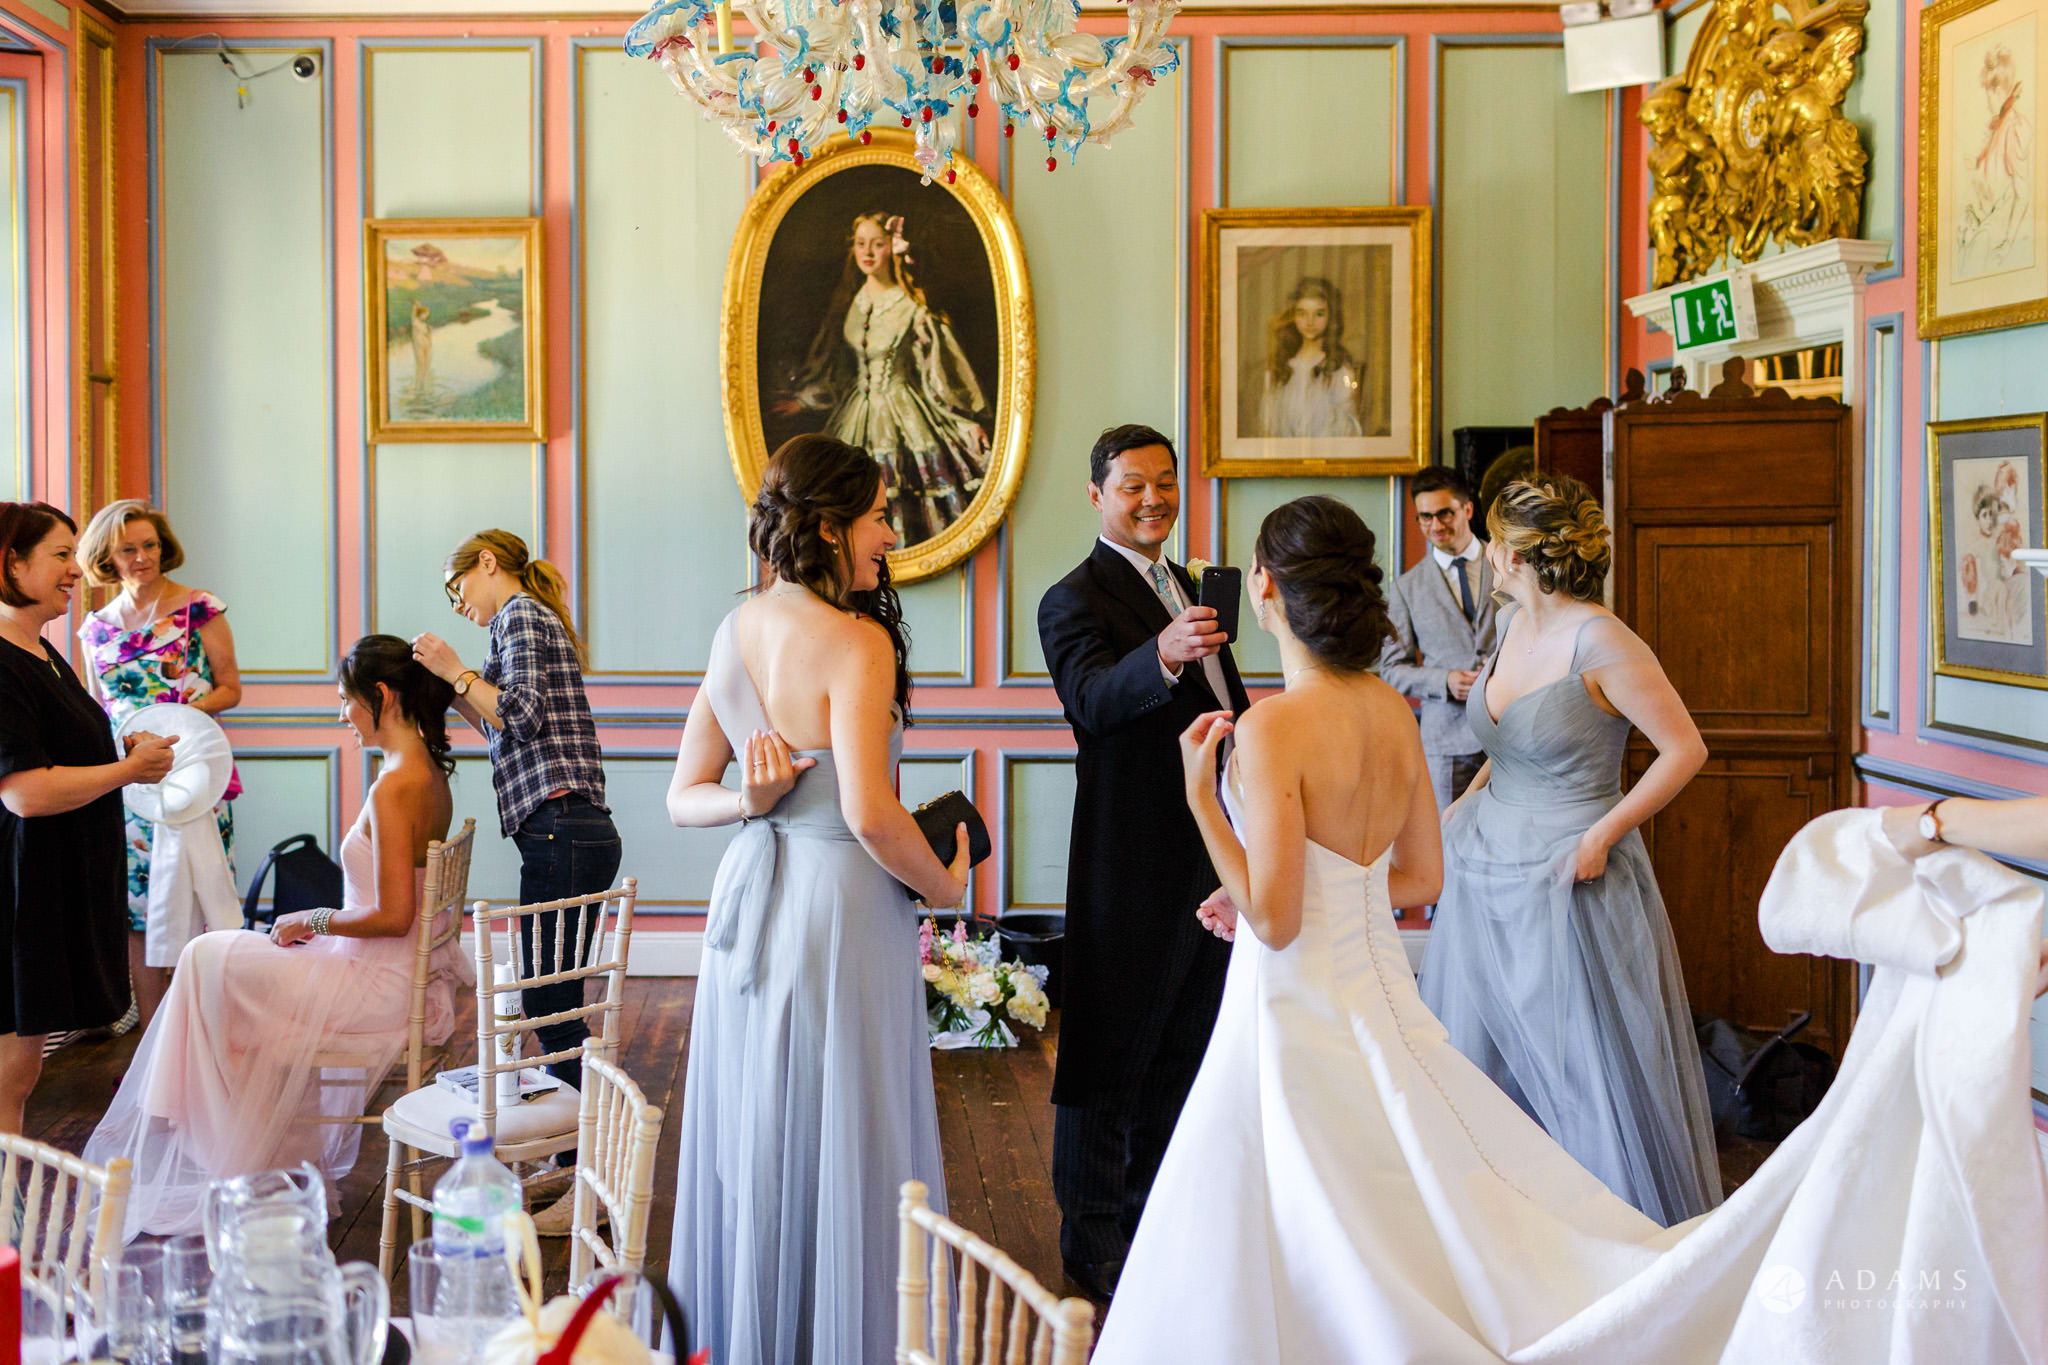 Trinity College Cambridge wedding father of the bride greets his daughter